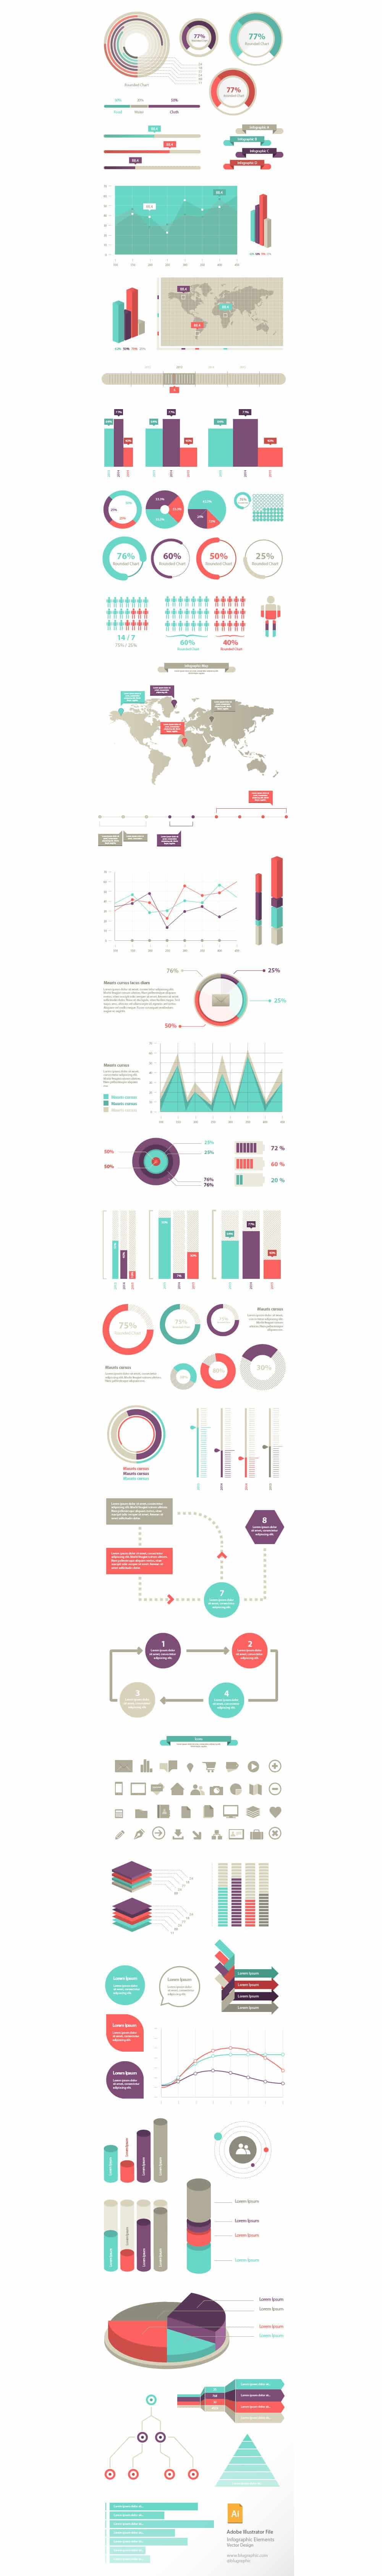 100+ Infographic Elements Vector